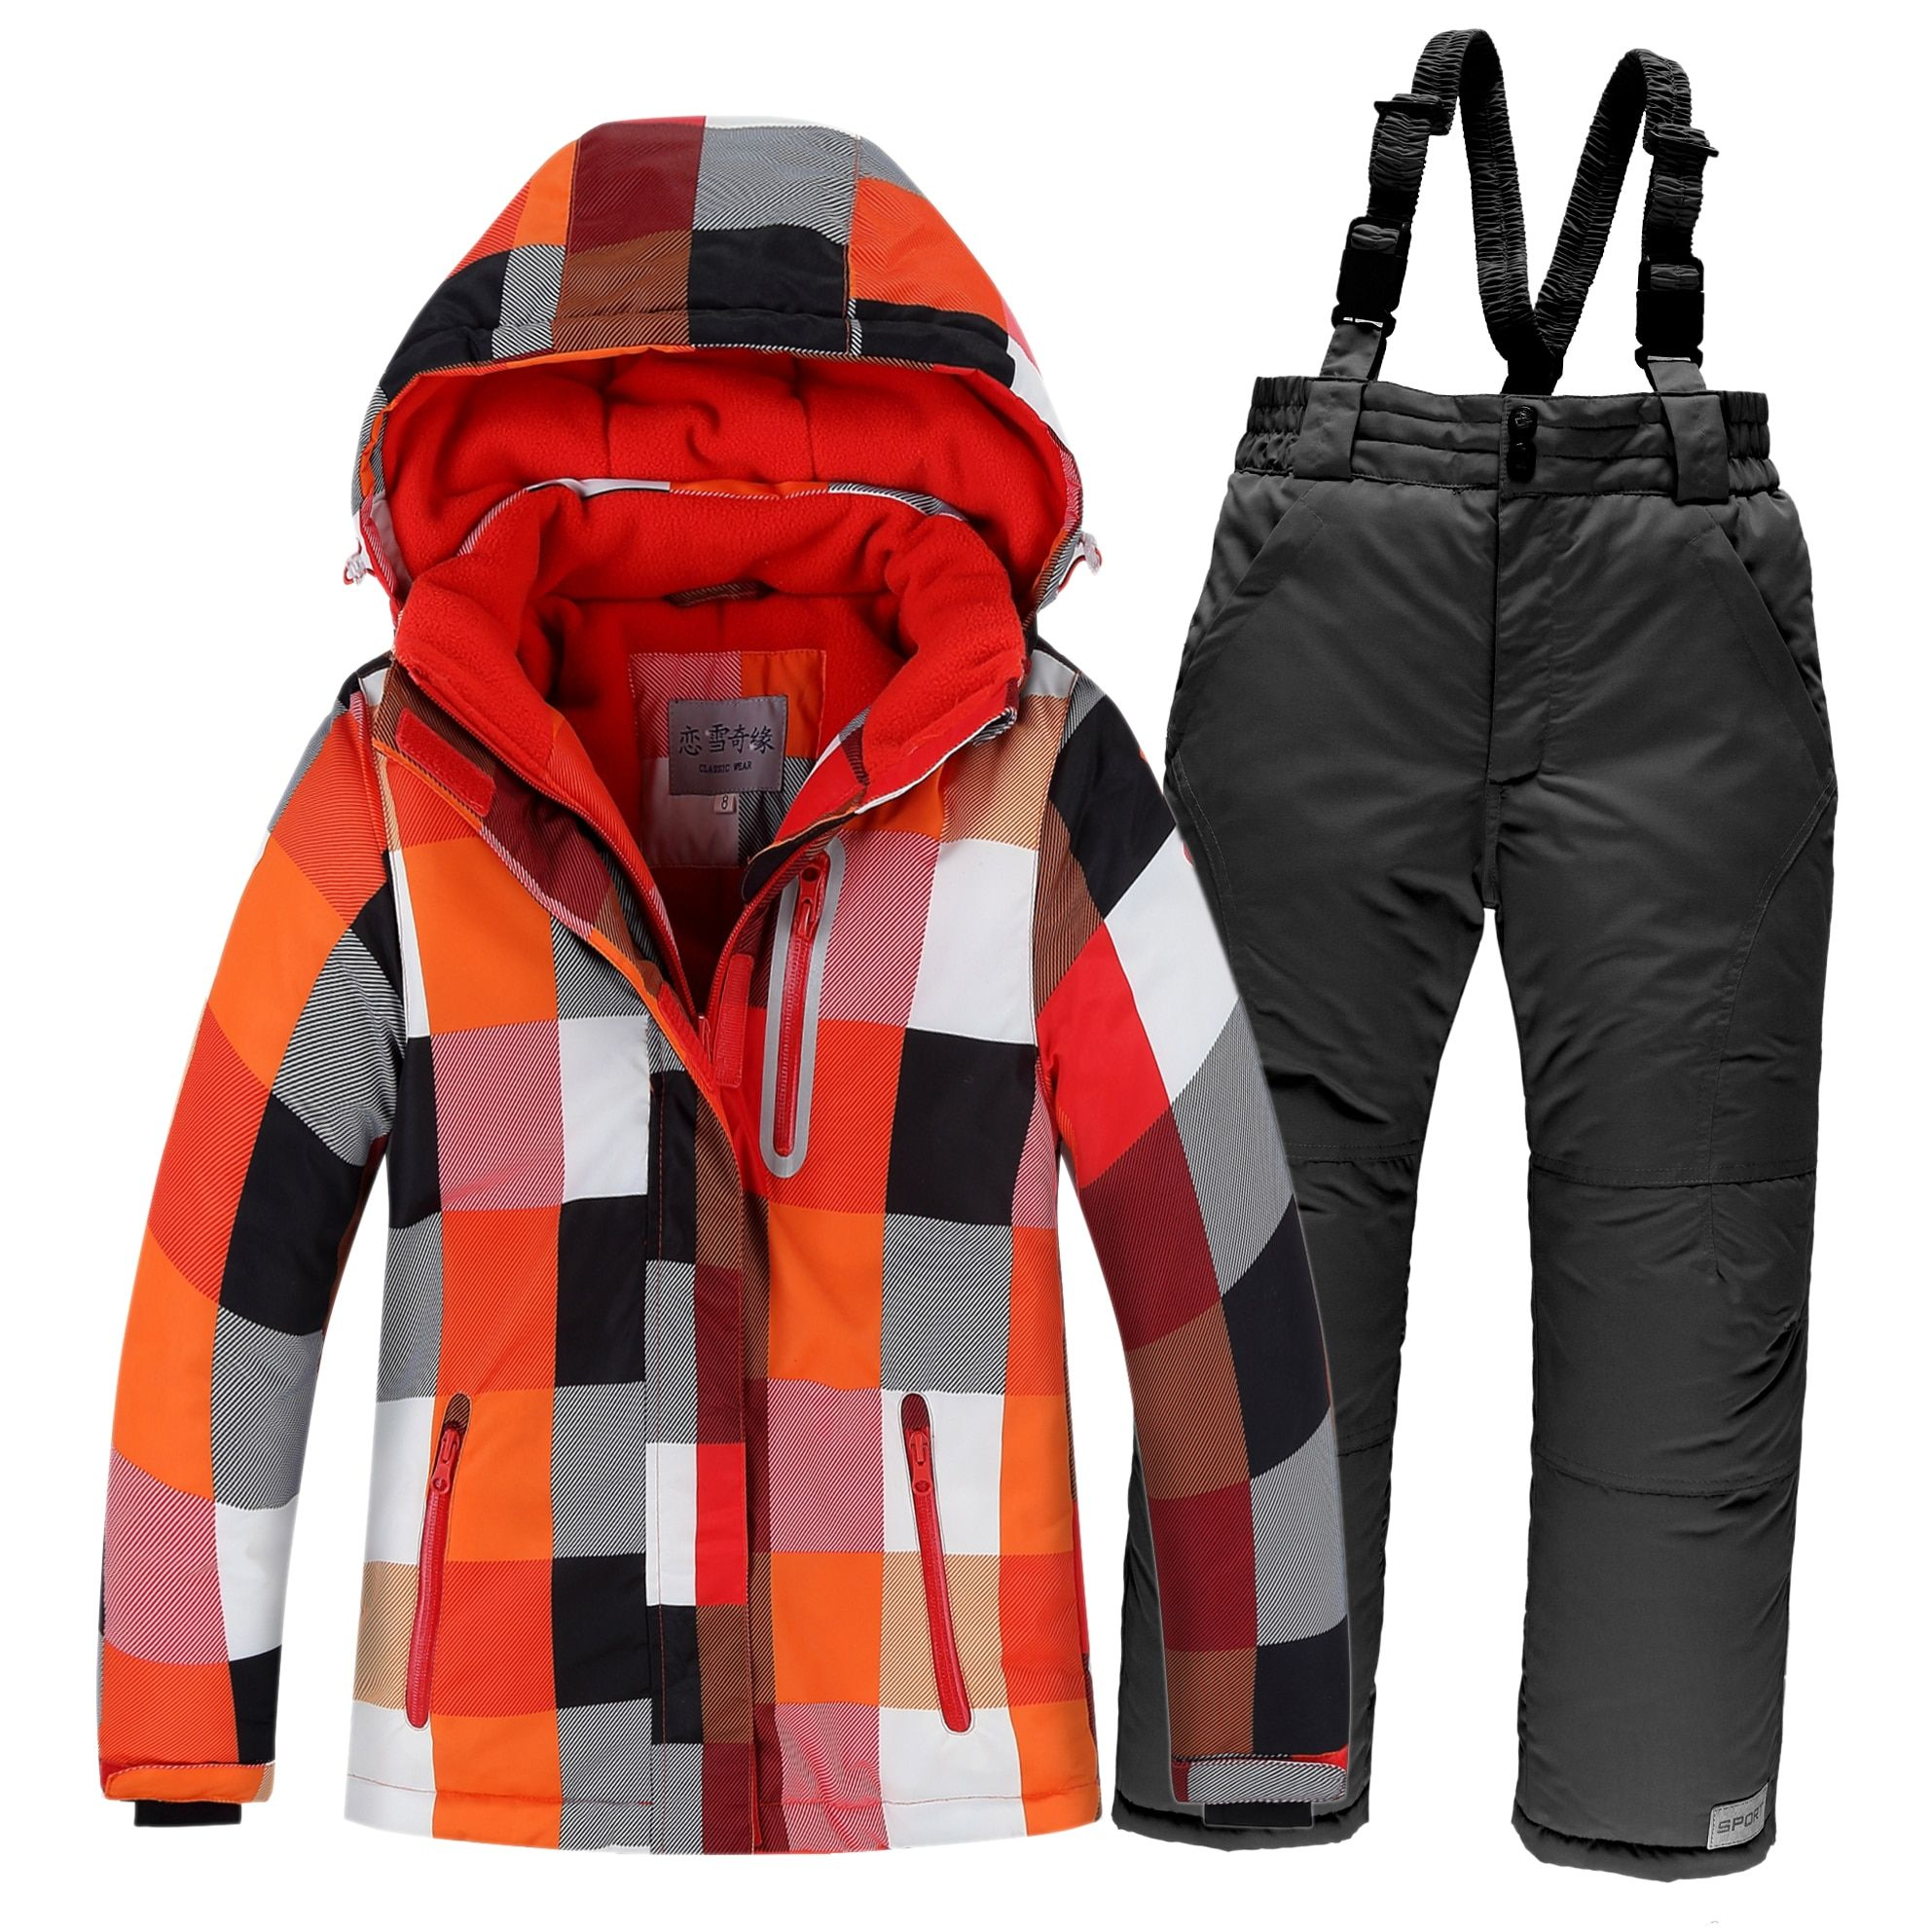 OLEKID Winter Children Ski Suit Windproof Warm Girls Clothing Set Jacket + Overalls Boys Clothes Set 3-16 Years Kids Snow Suits